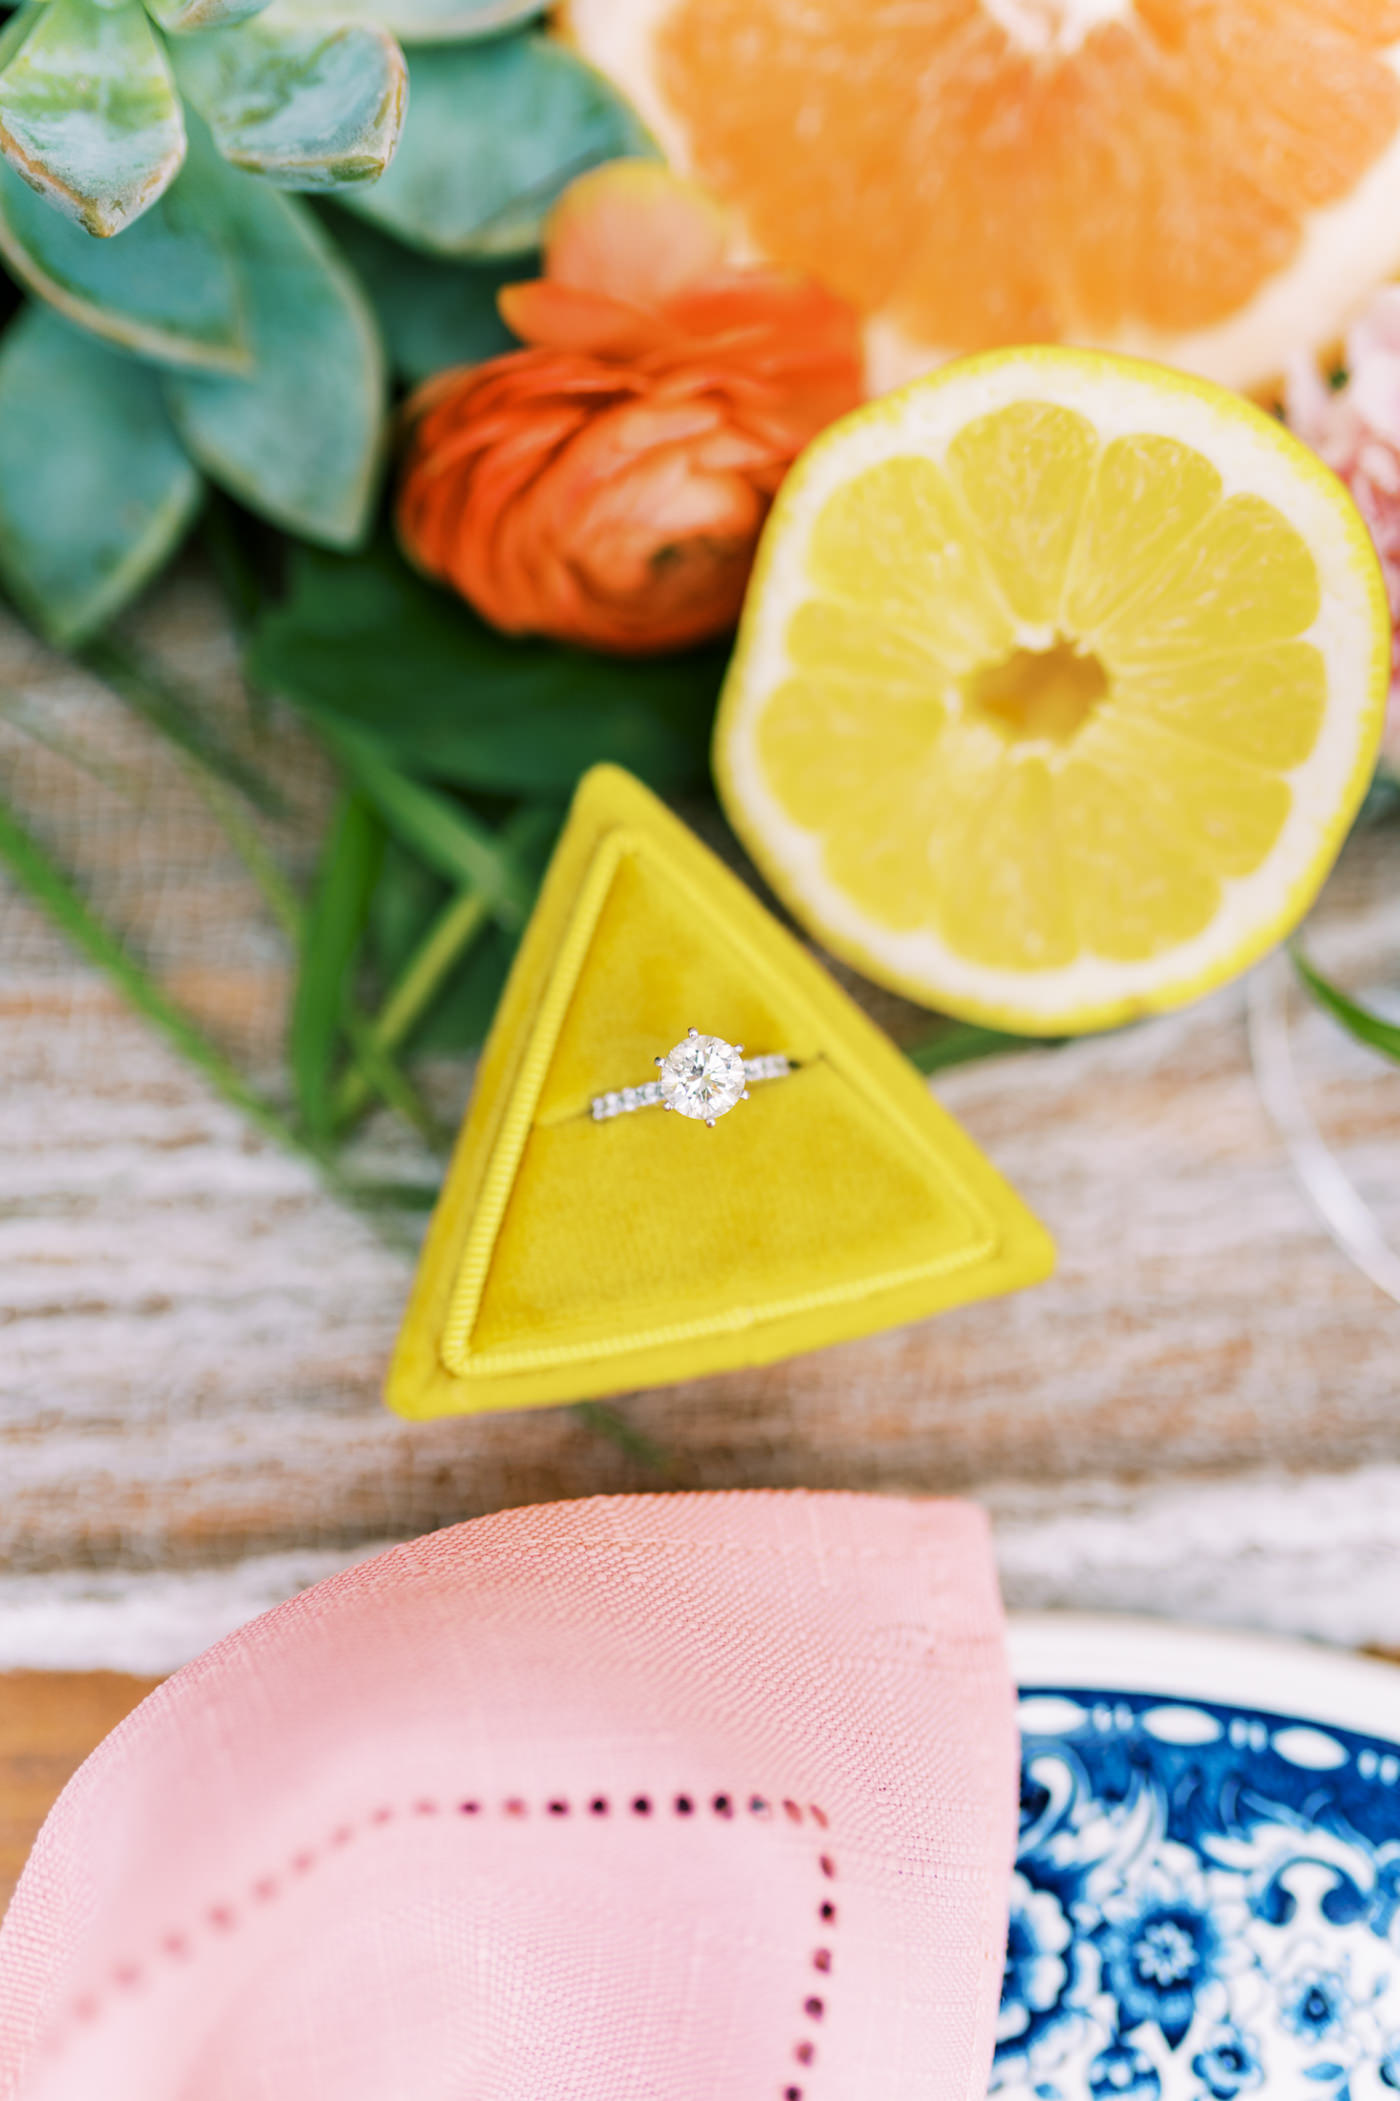 Florida Citrus Wedding Inspiration with Yellow Velvet Ring Box | Wedding Ring Shot with Round Solitaire Diamond Engagement Ring with Channel Set Diamonds Band